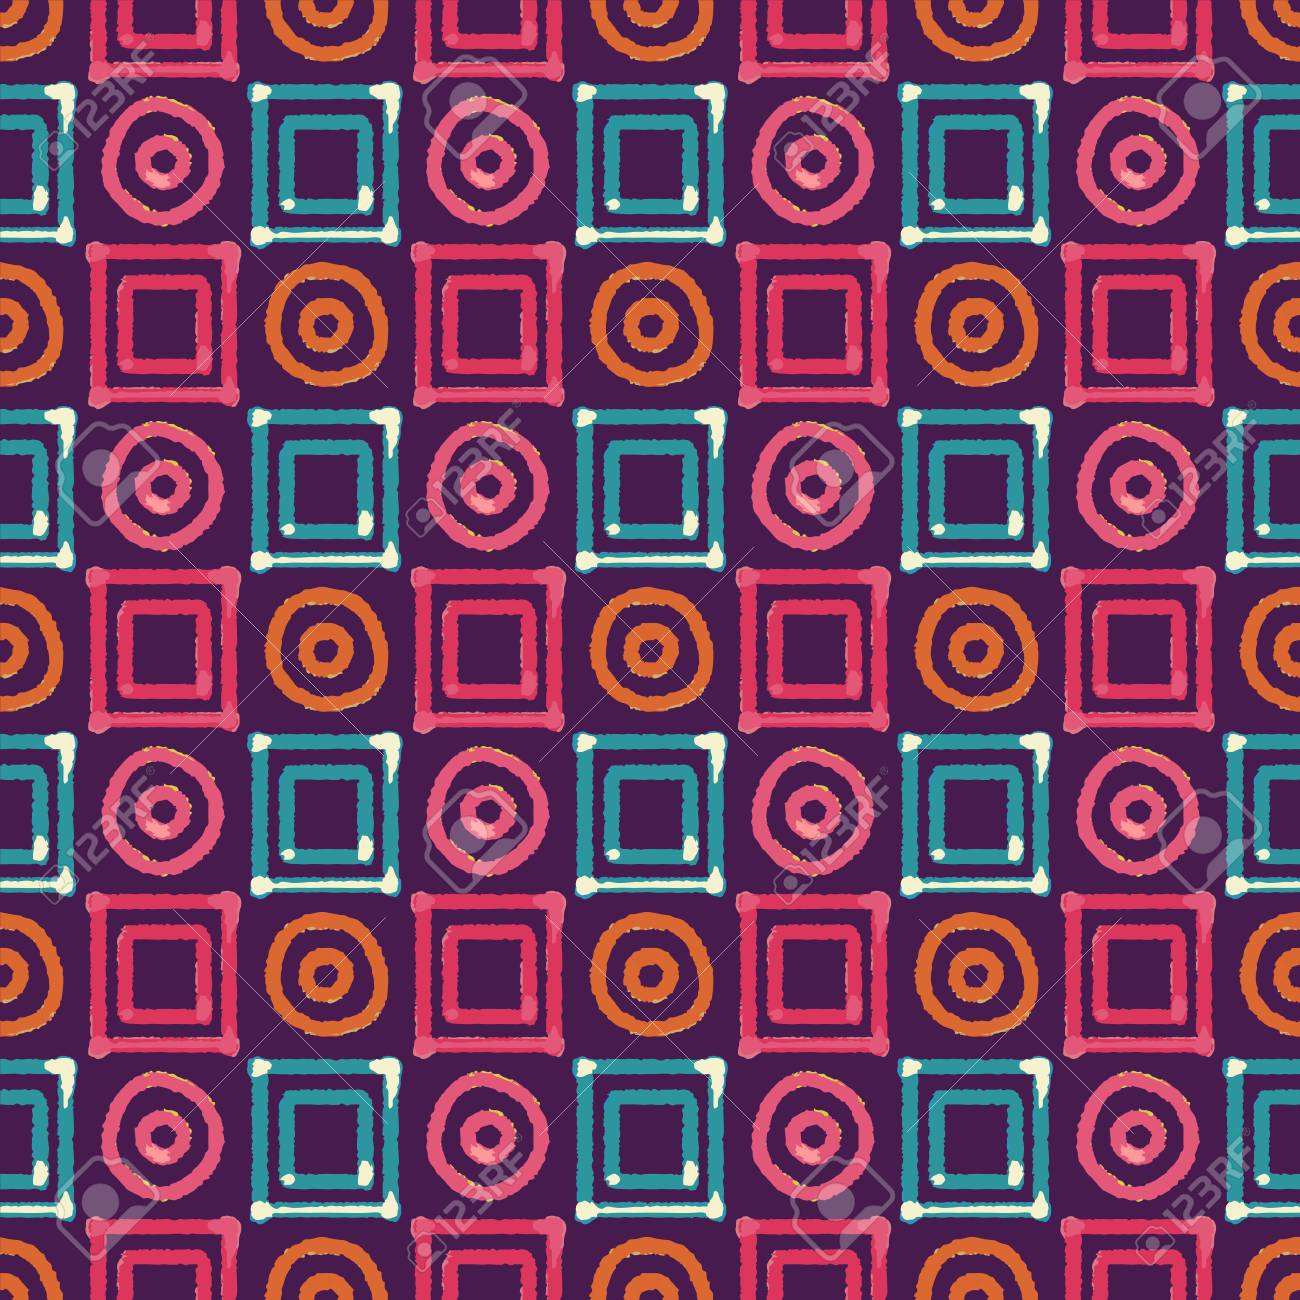 Abstract Art Ethnic Distressed Seamless Pattern With Squares